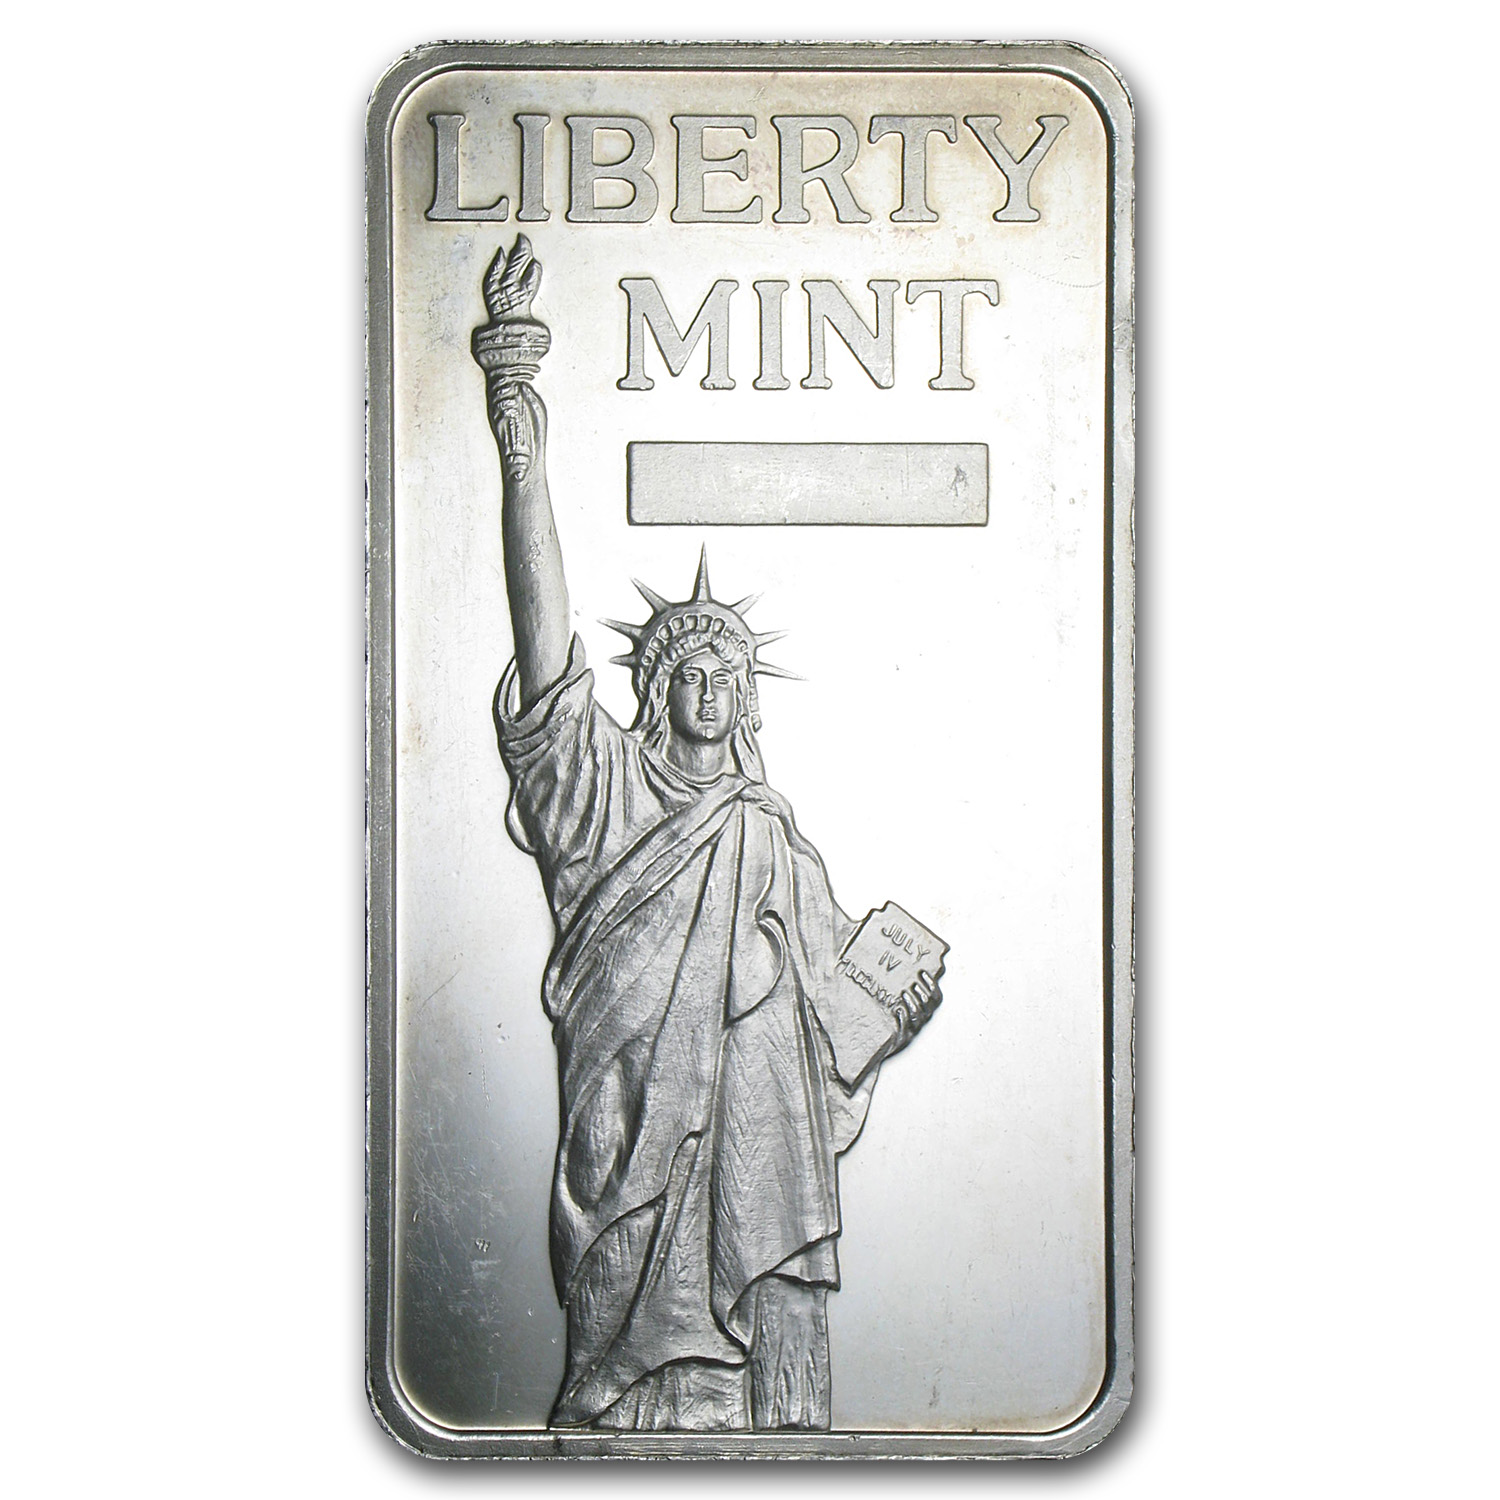 10 oz Silver Bars - Liberty Mint